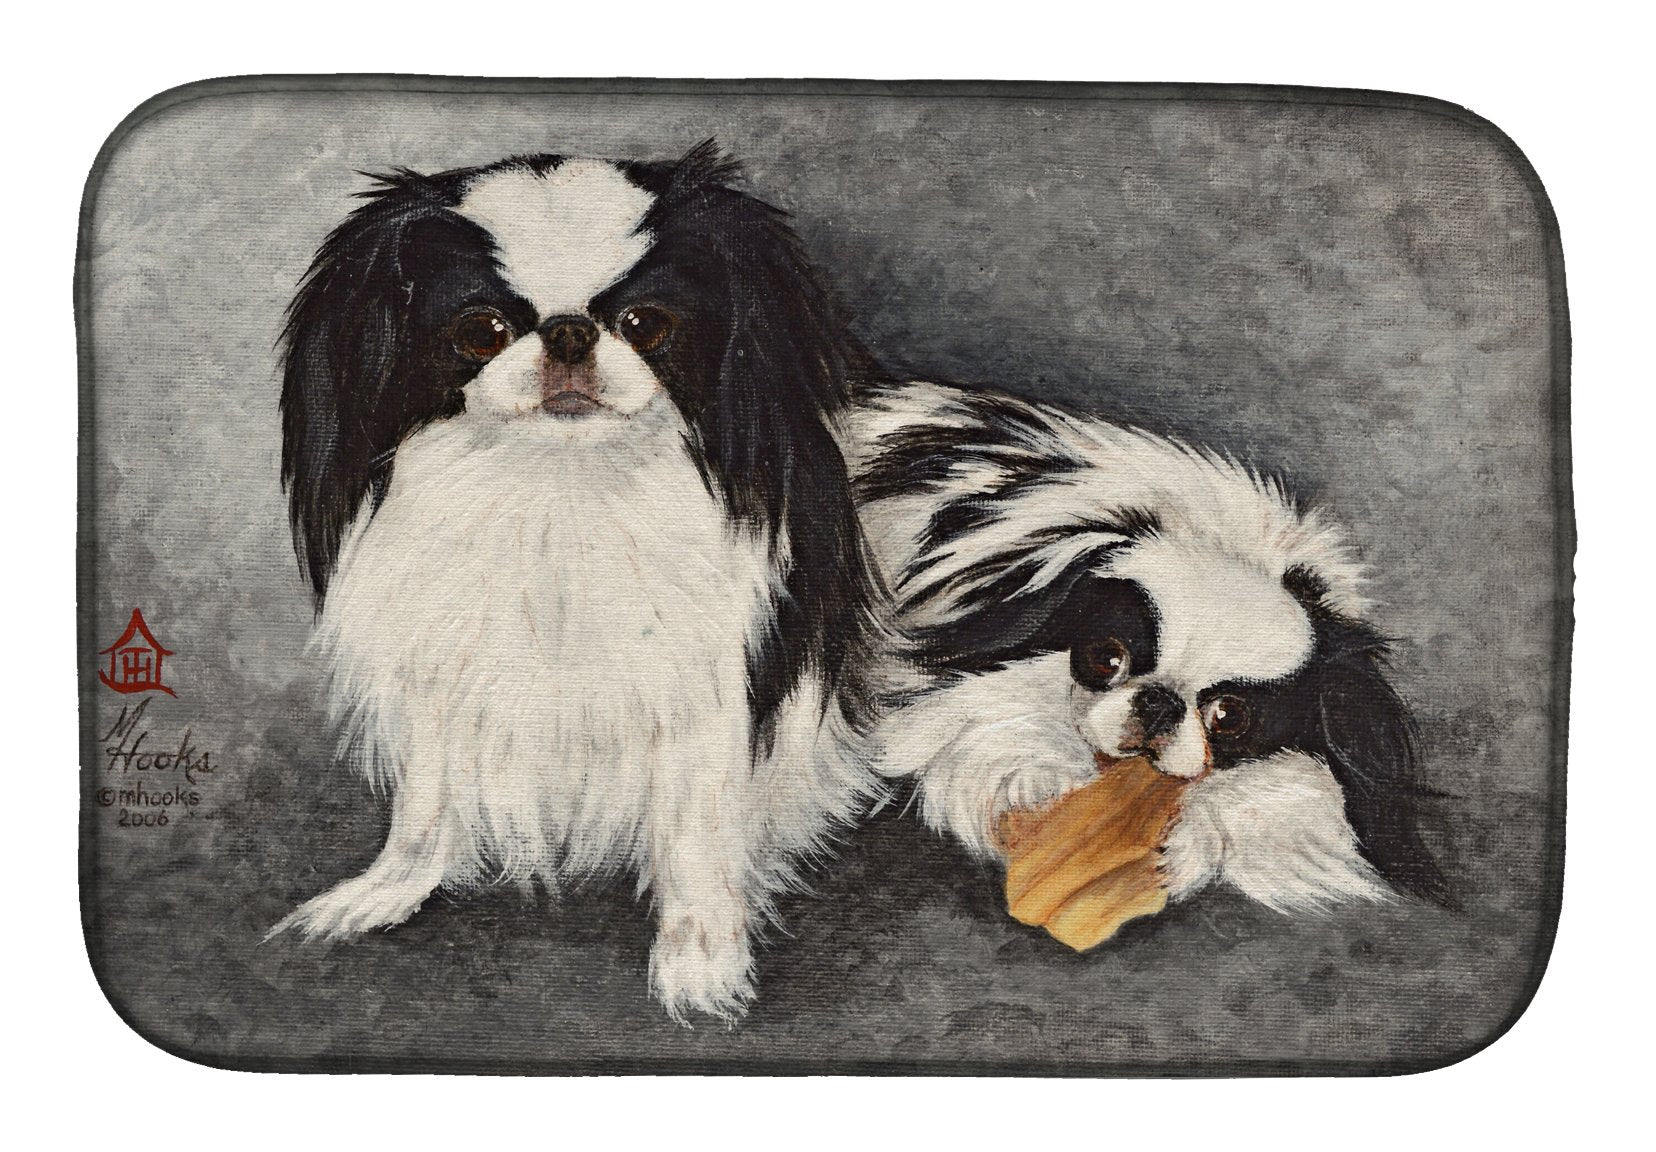 Japanese Chin Impress Dish Drying Mat MH1050DDM by Caroline's Treasures